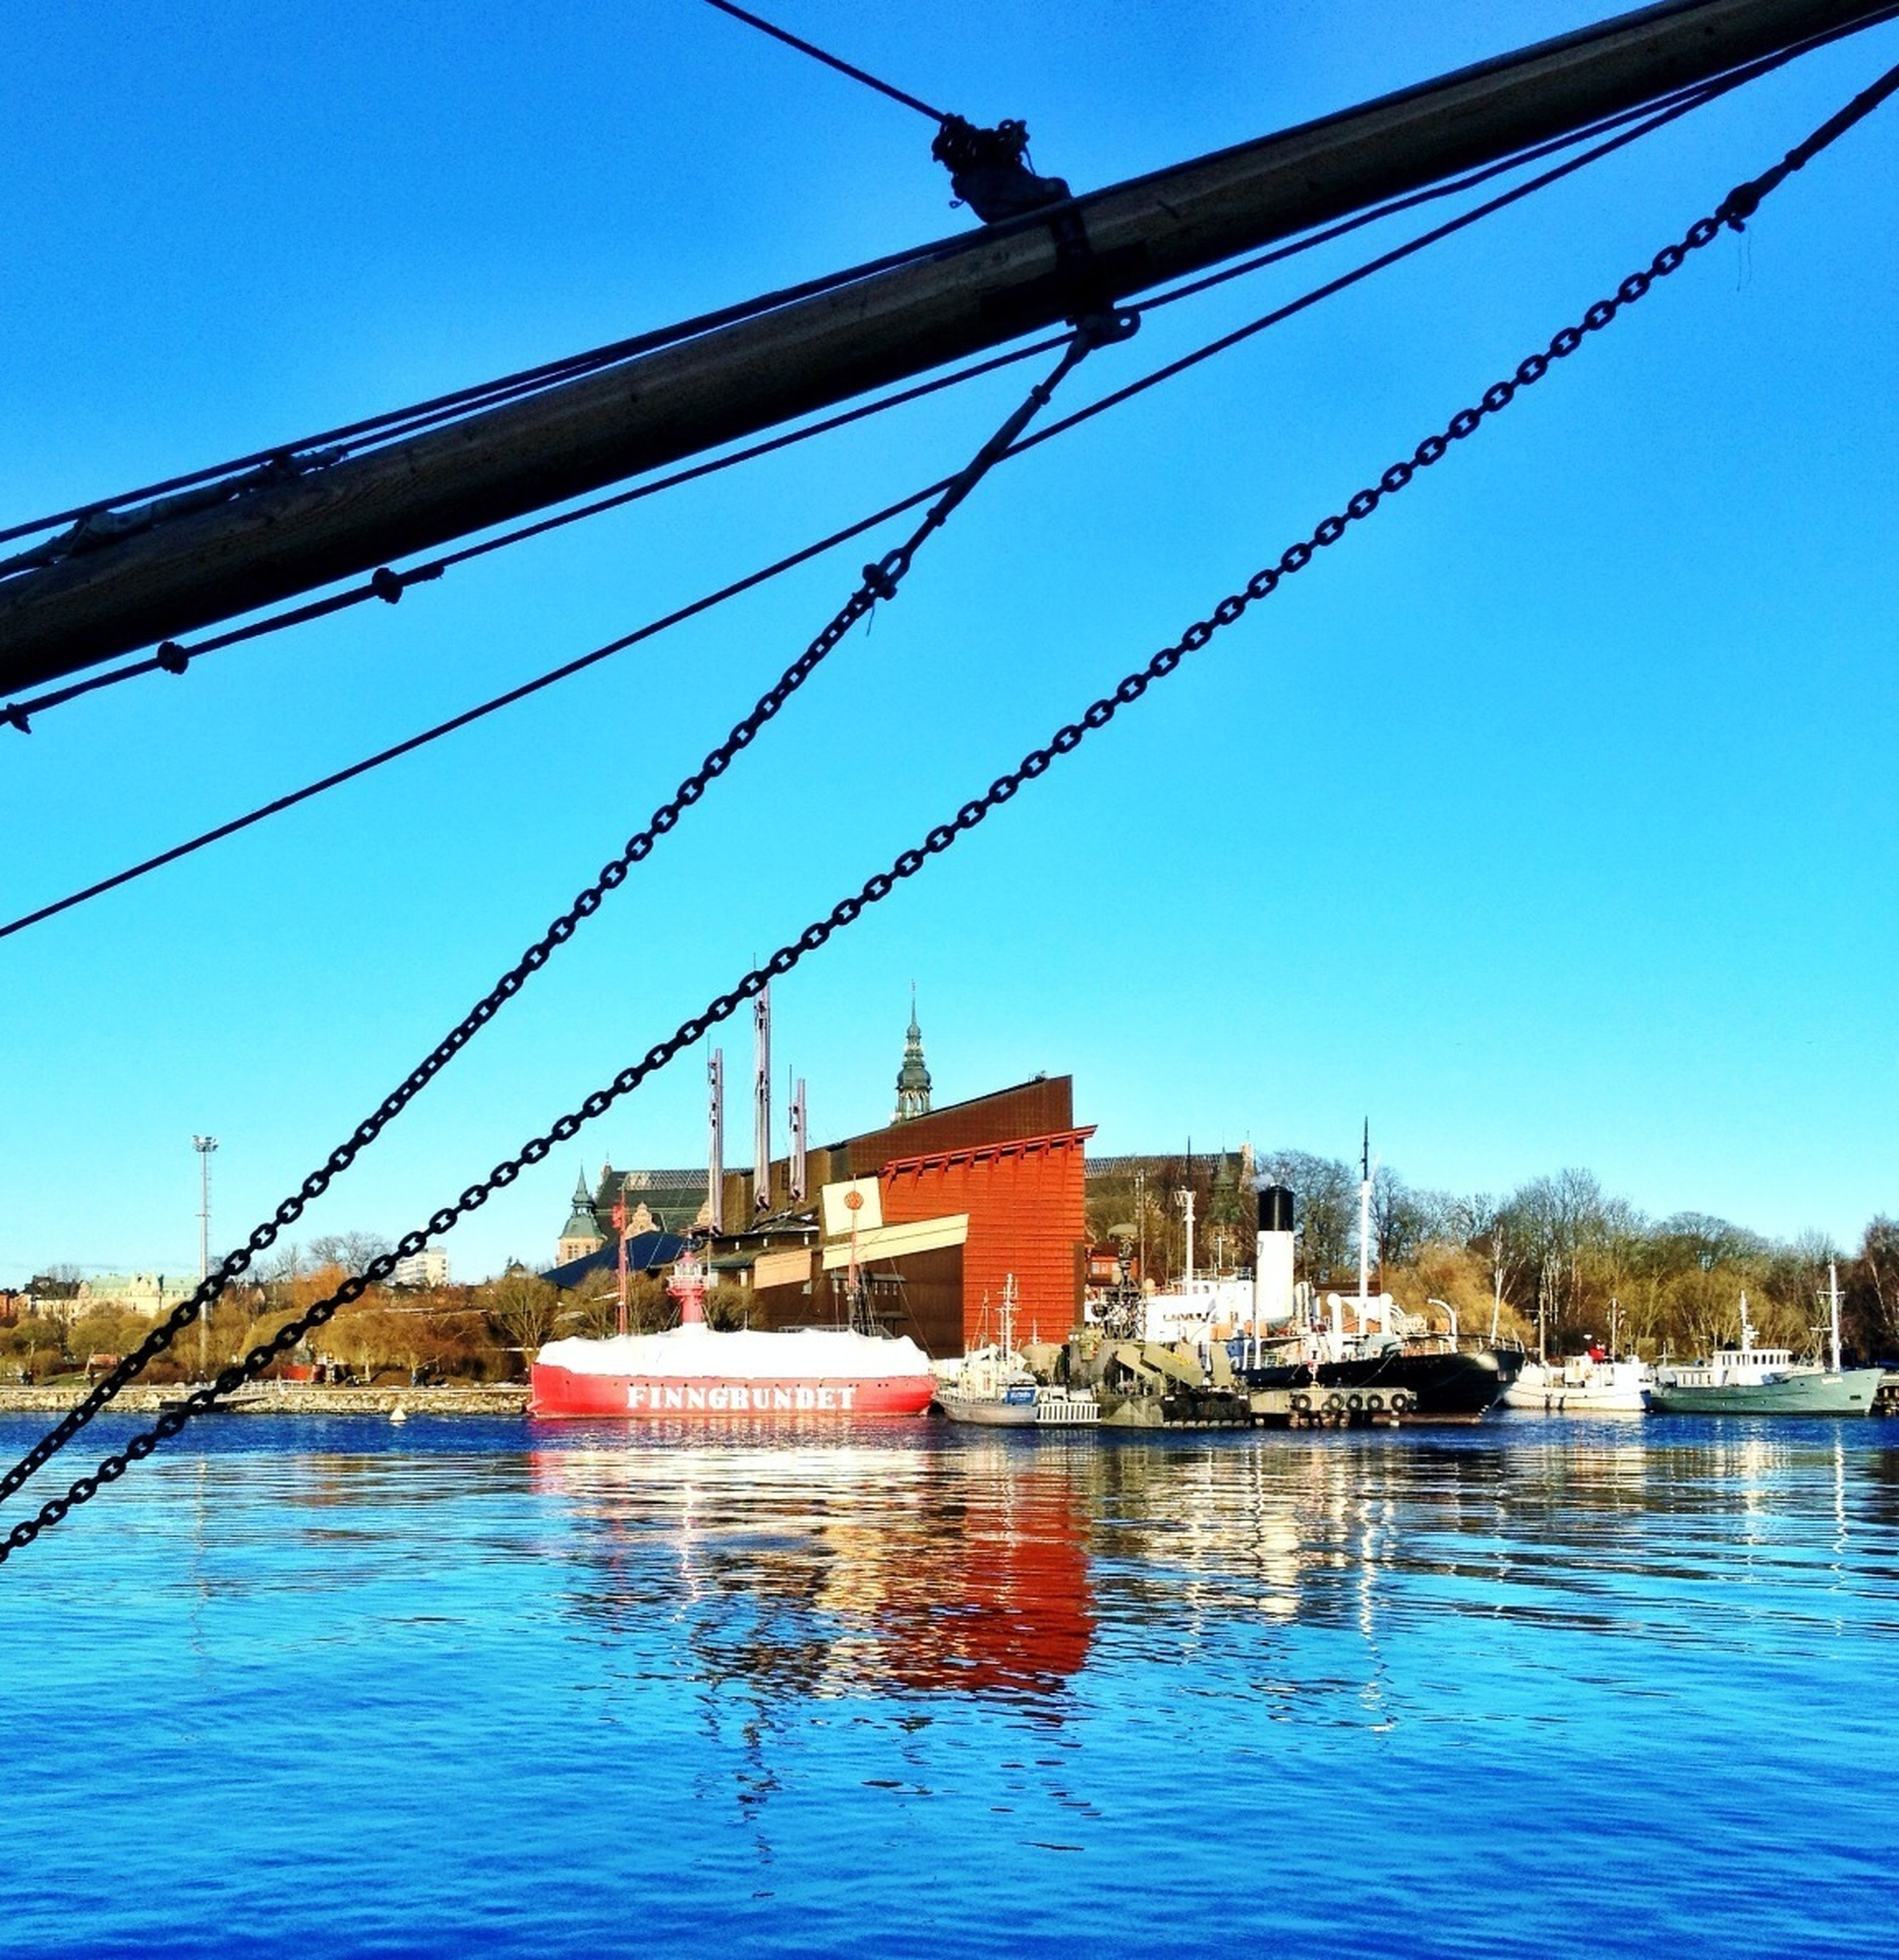 nautical vessel, transportation, blue, water, clear sky, boat, mode of transport, mast, waterfront, moored, built structure, sailboat, sky, river, day, harbor, architecture, reflection, travel, outdoors